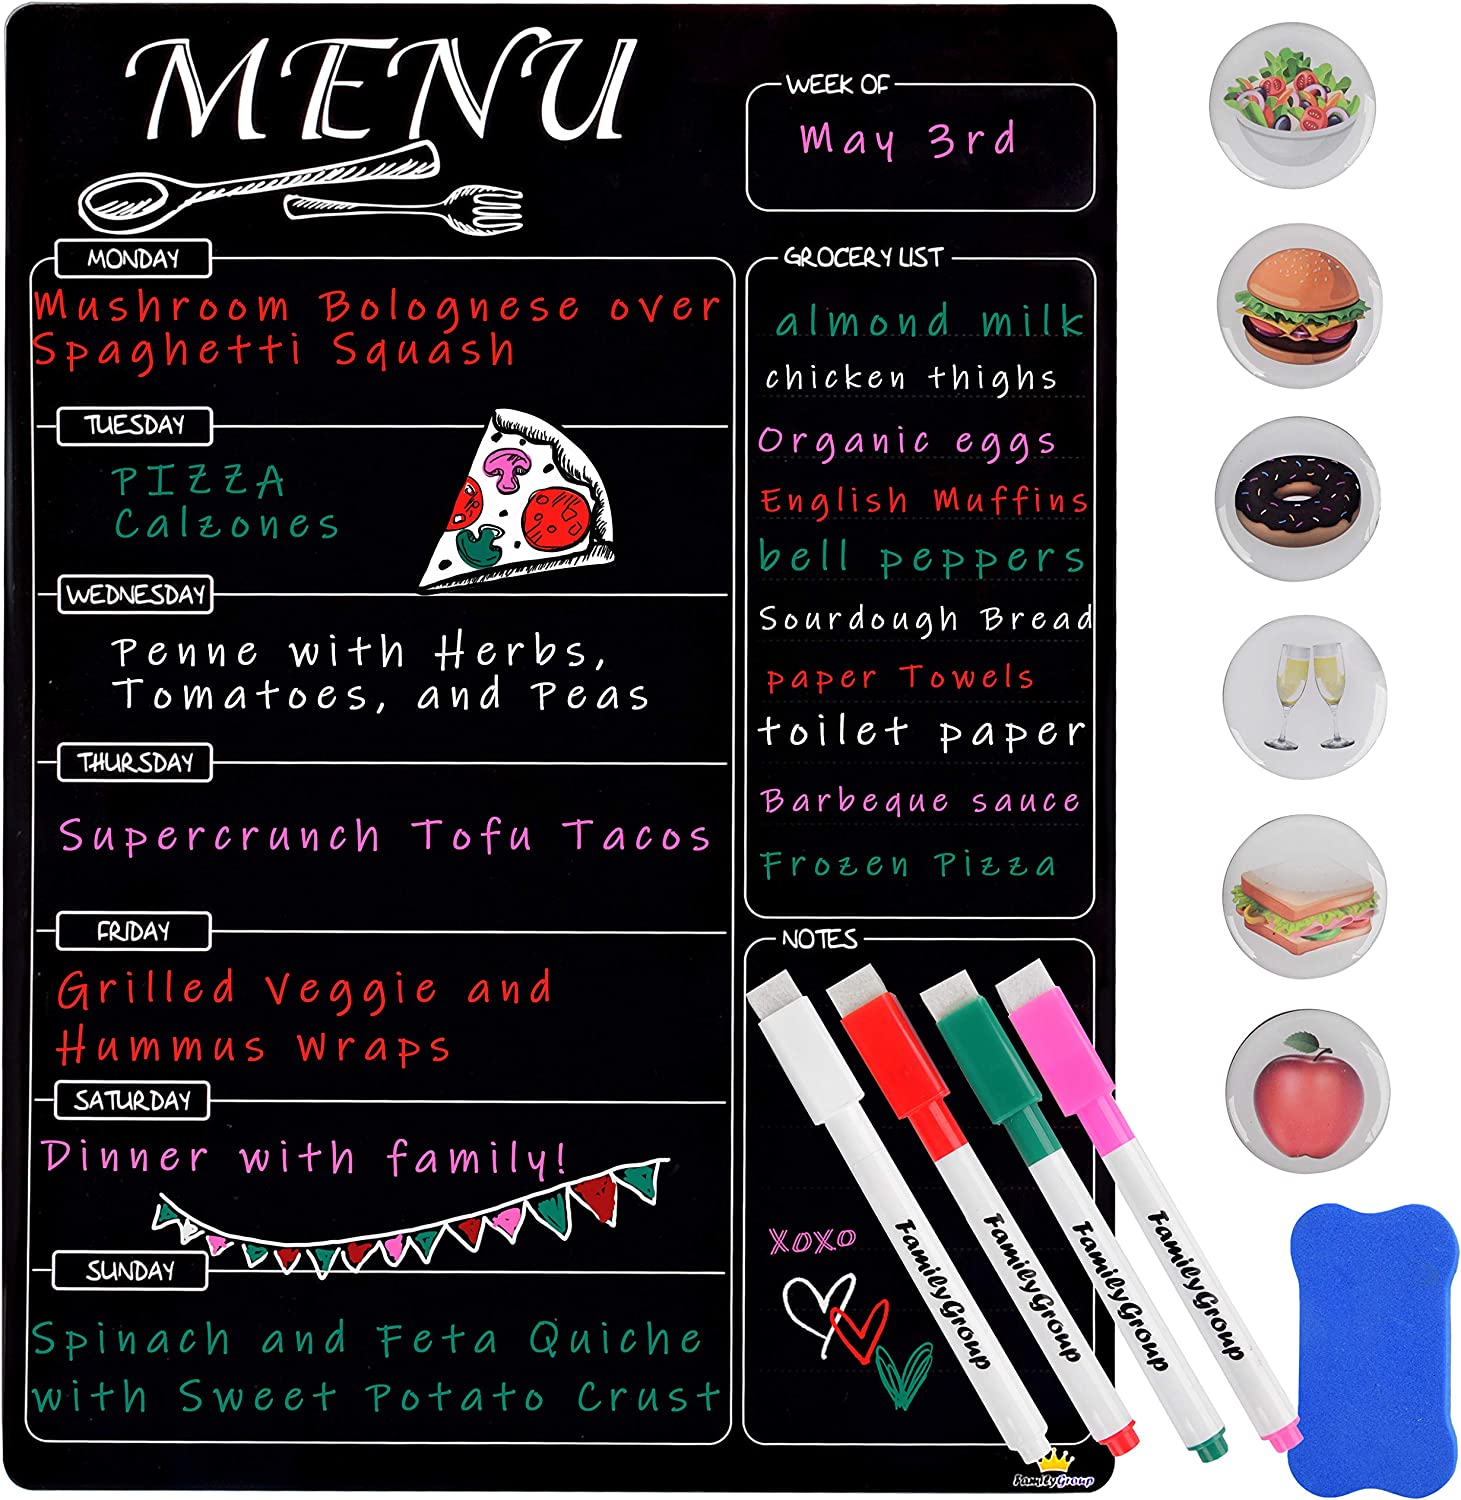 Magnetic Menu Board for Kitchen Refrigerator - Dry Erase Planner and Liquid Chalkboard - Schedule Dinner for The Family - Magnets and Eraser Included